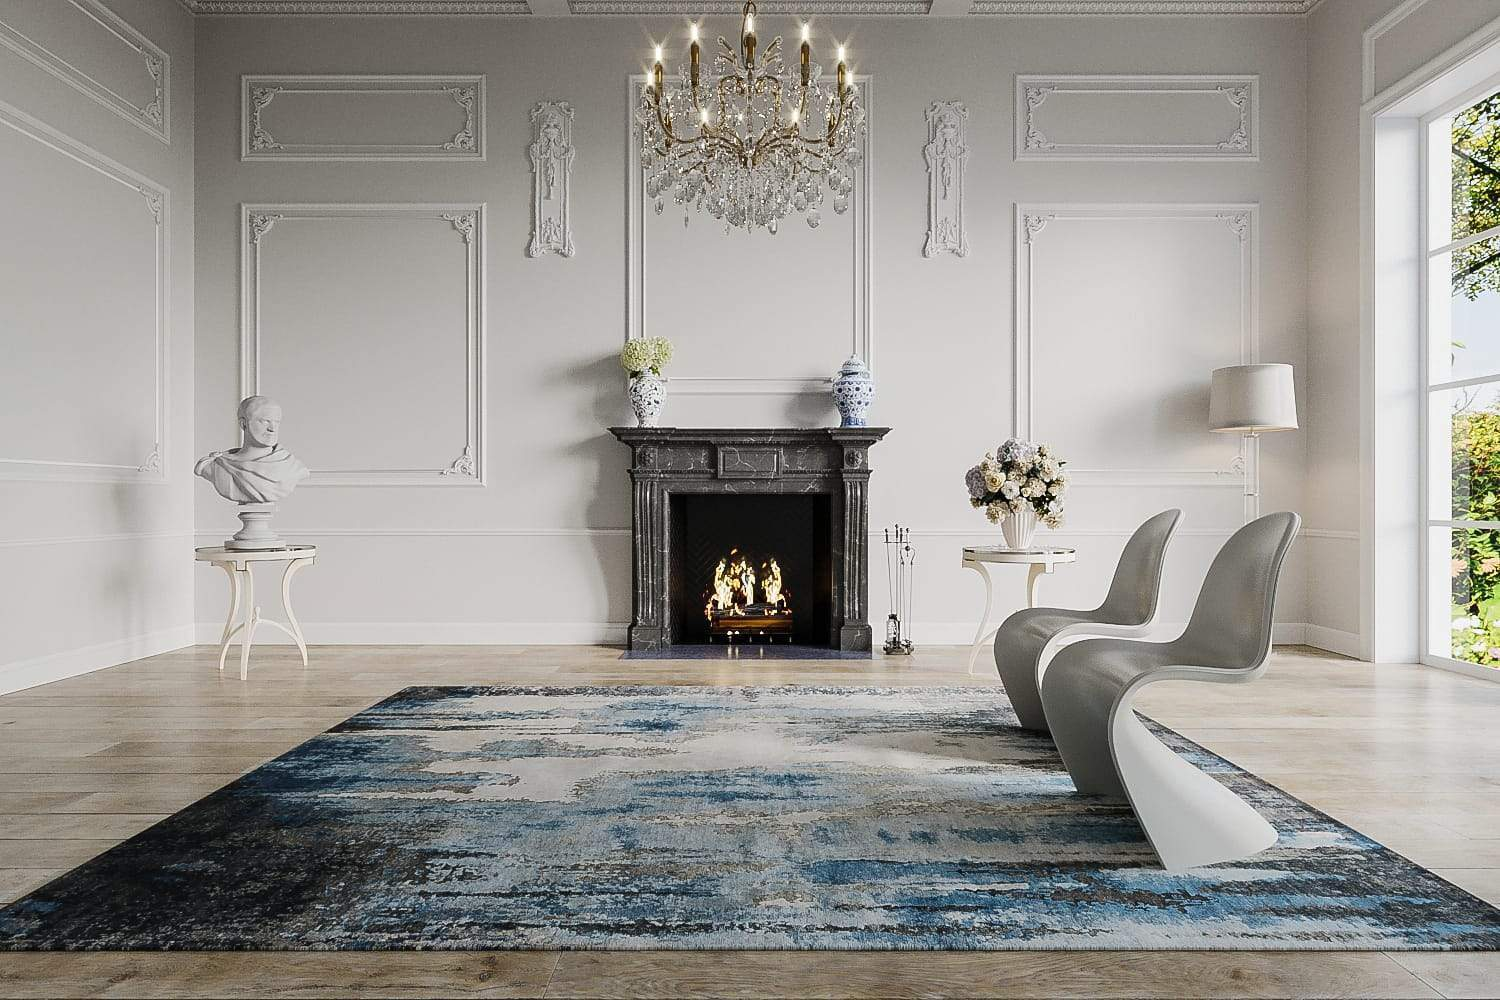 Installation image of Caverns Blue Steel, a hand knotted rug designed by Tufenkian room-image